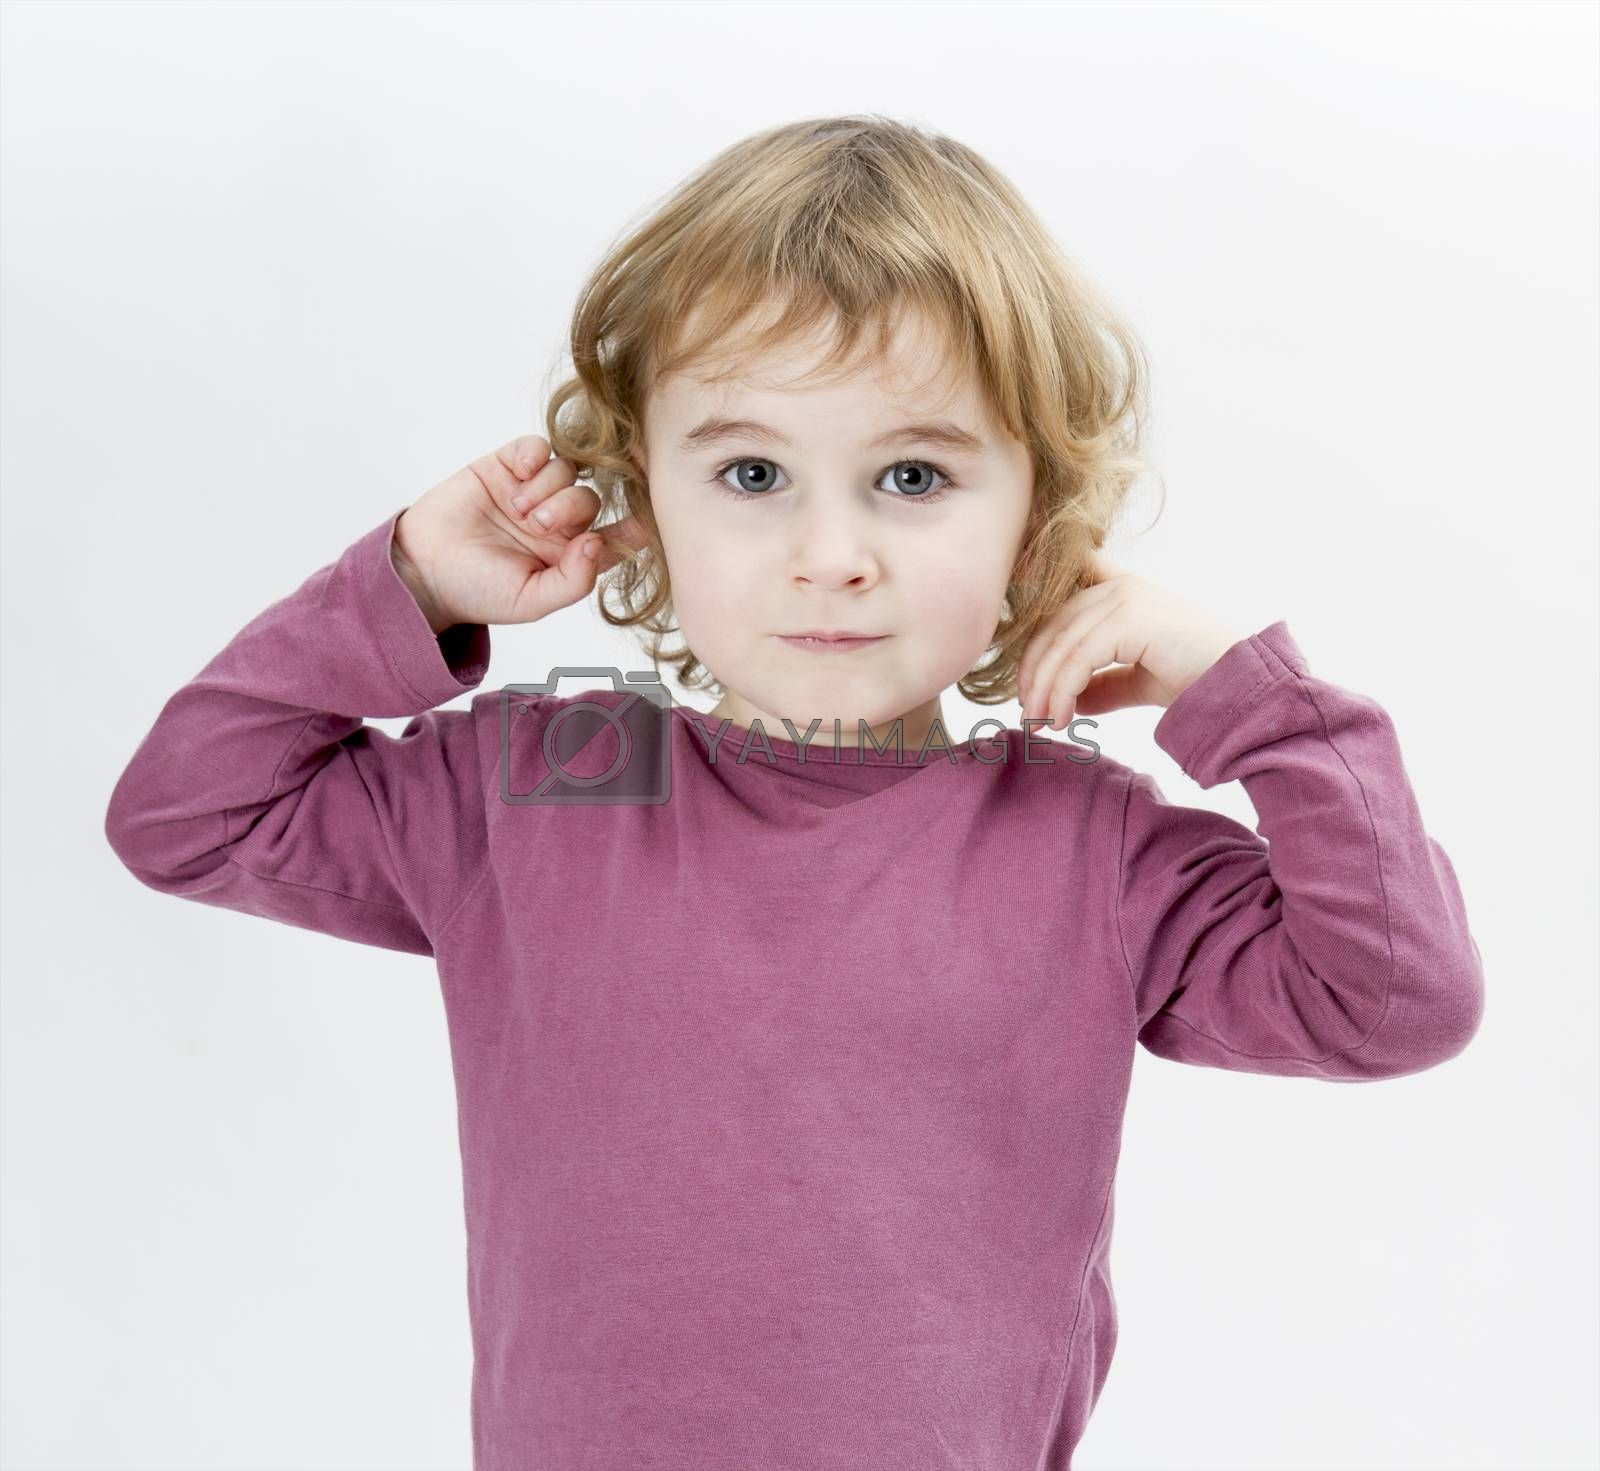 young child with finger in ears isolated on white background